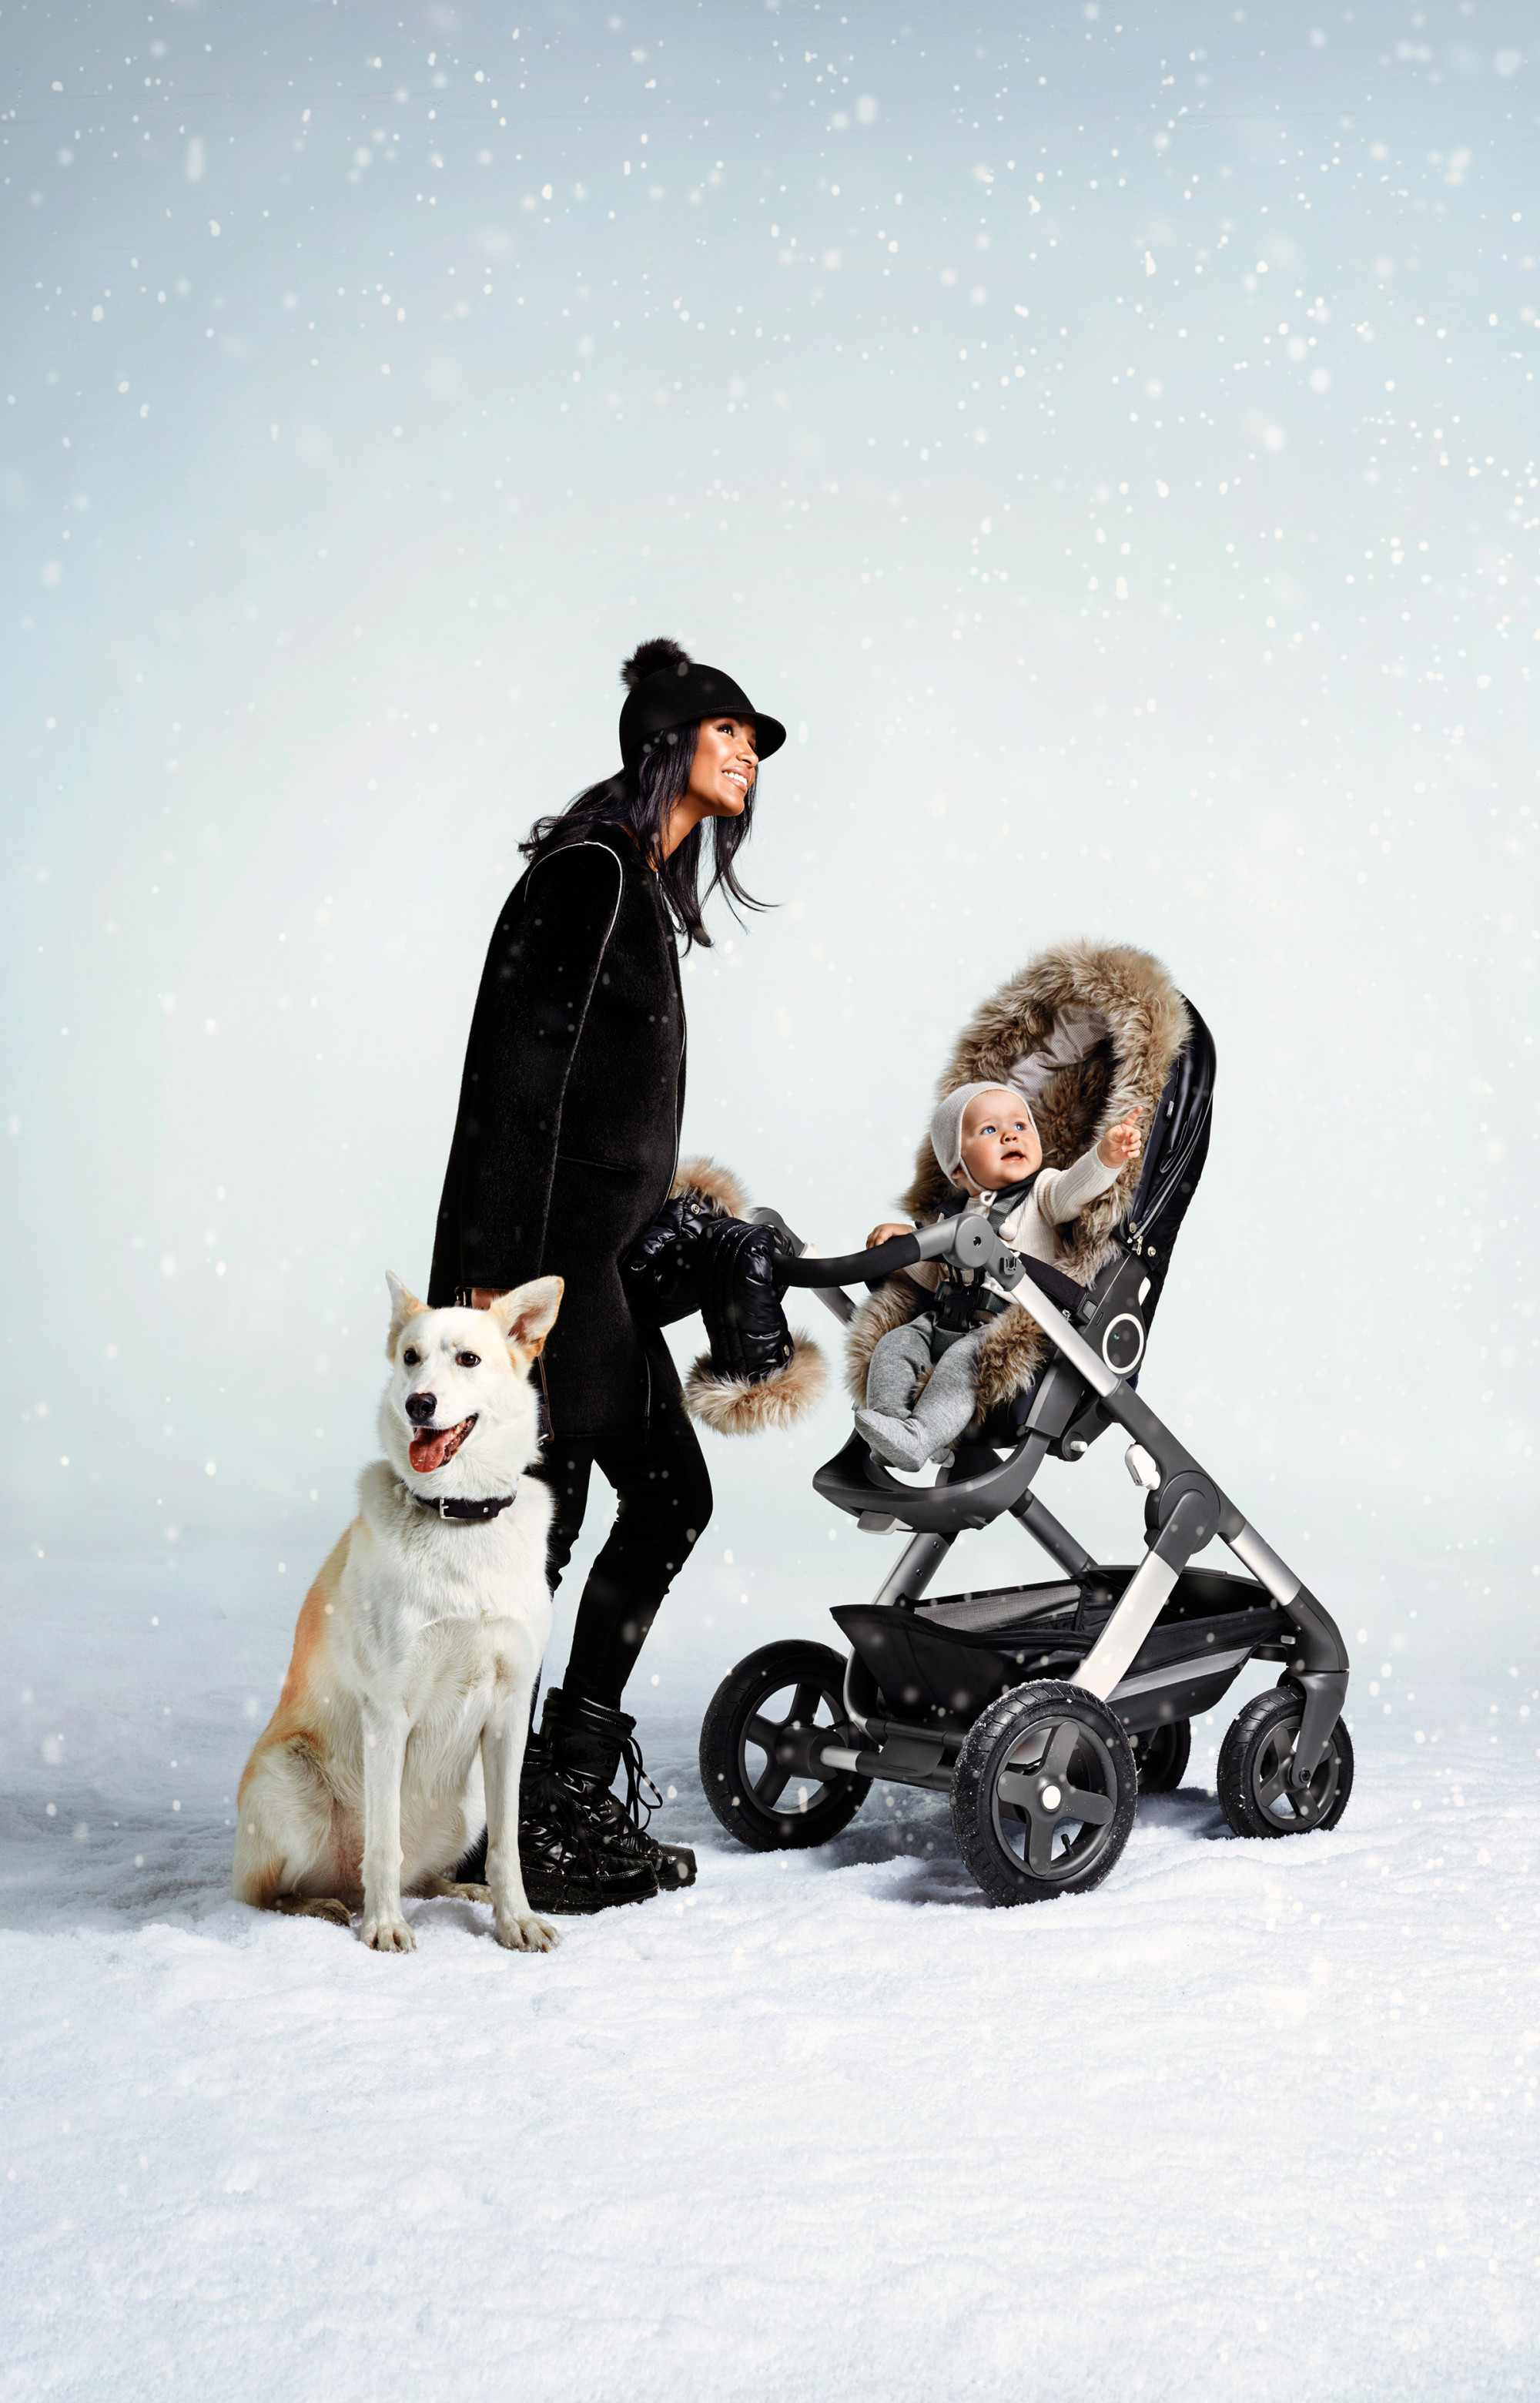 Stokke-Stroller-Winter-Kit-on-Trailz-Onyx-Black-150519-0691-I